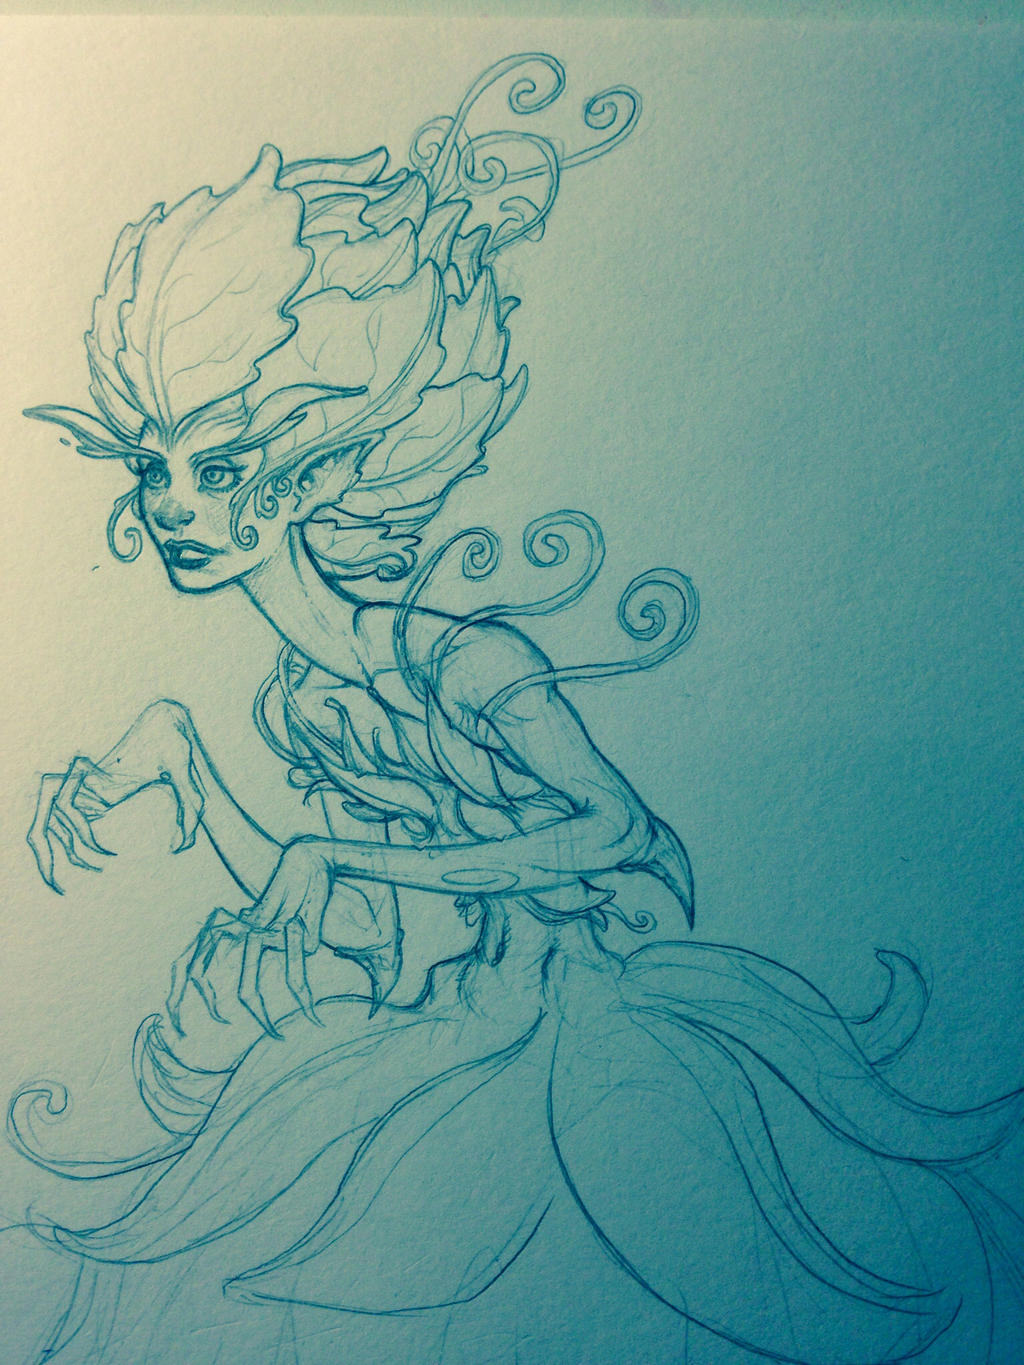 Flower girl doodle sketch by Maxx-Marshall